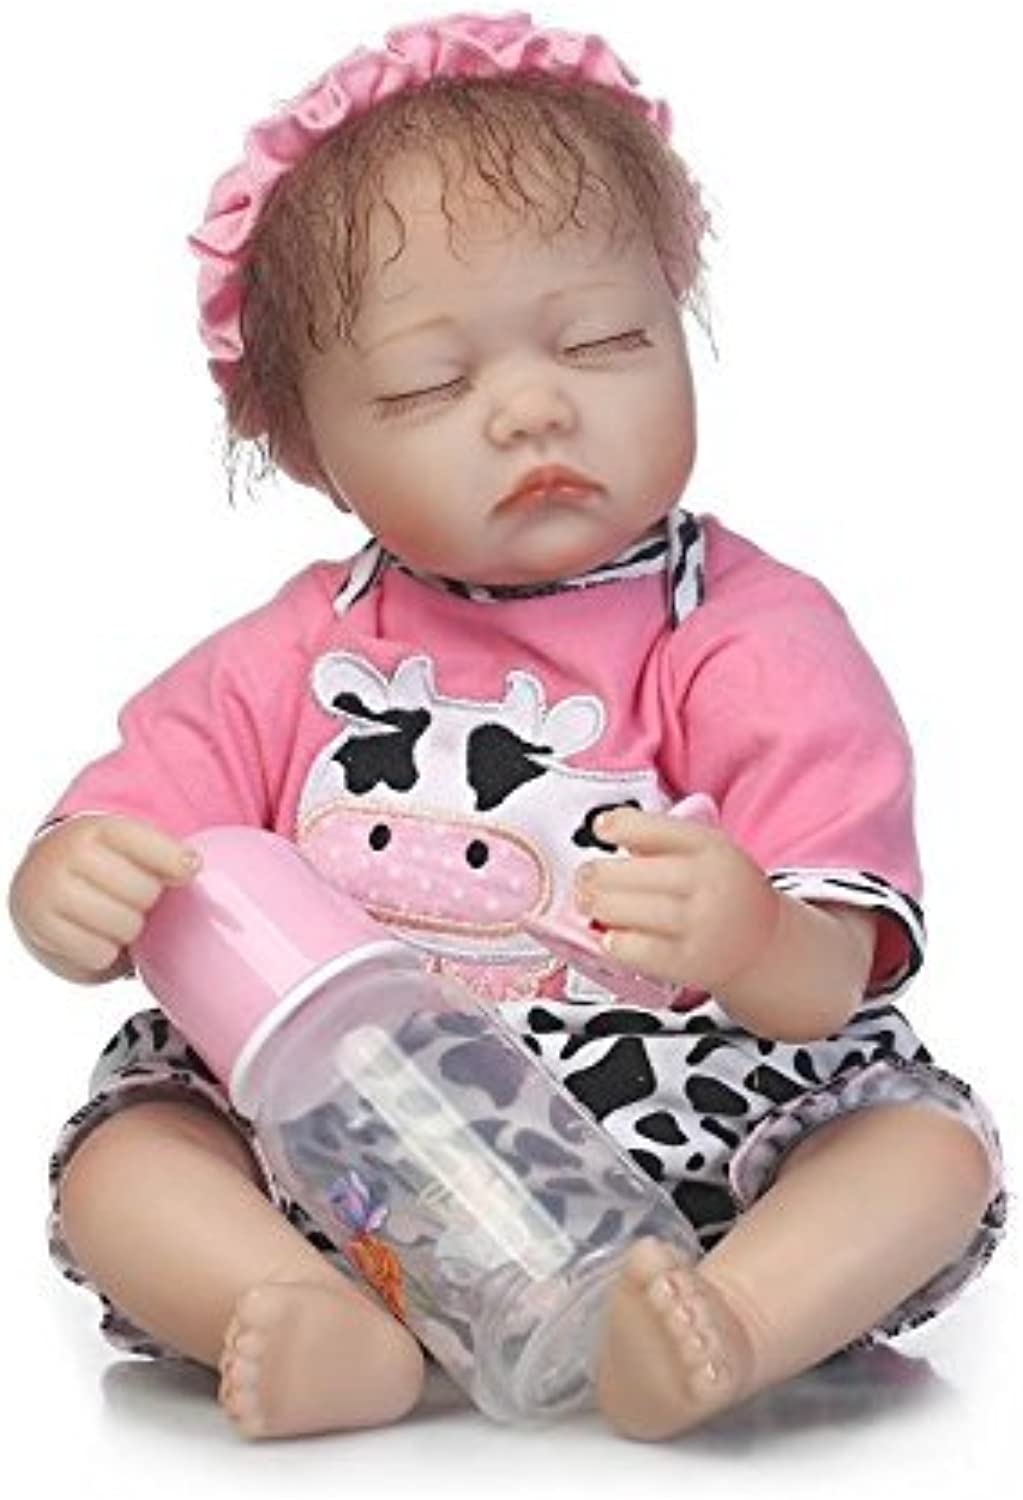 Nicery Reborn Doll 18 inch 45cm Soft Silicone Cloth Body Magnetic Mouth Mohair Lifelike Toys for Boys and Girls Birthday Christmas 45101